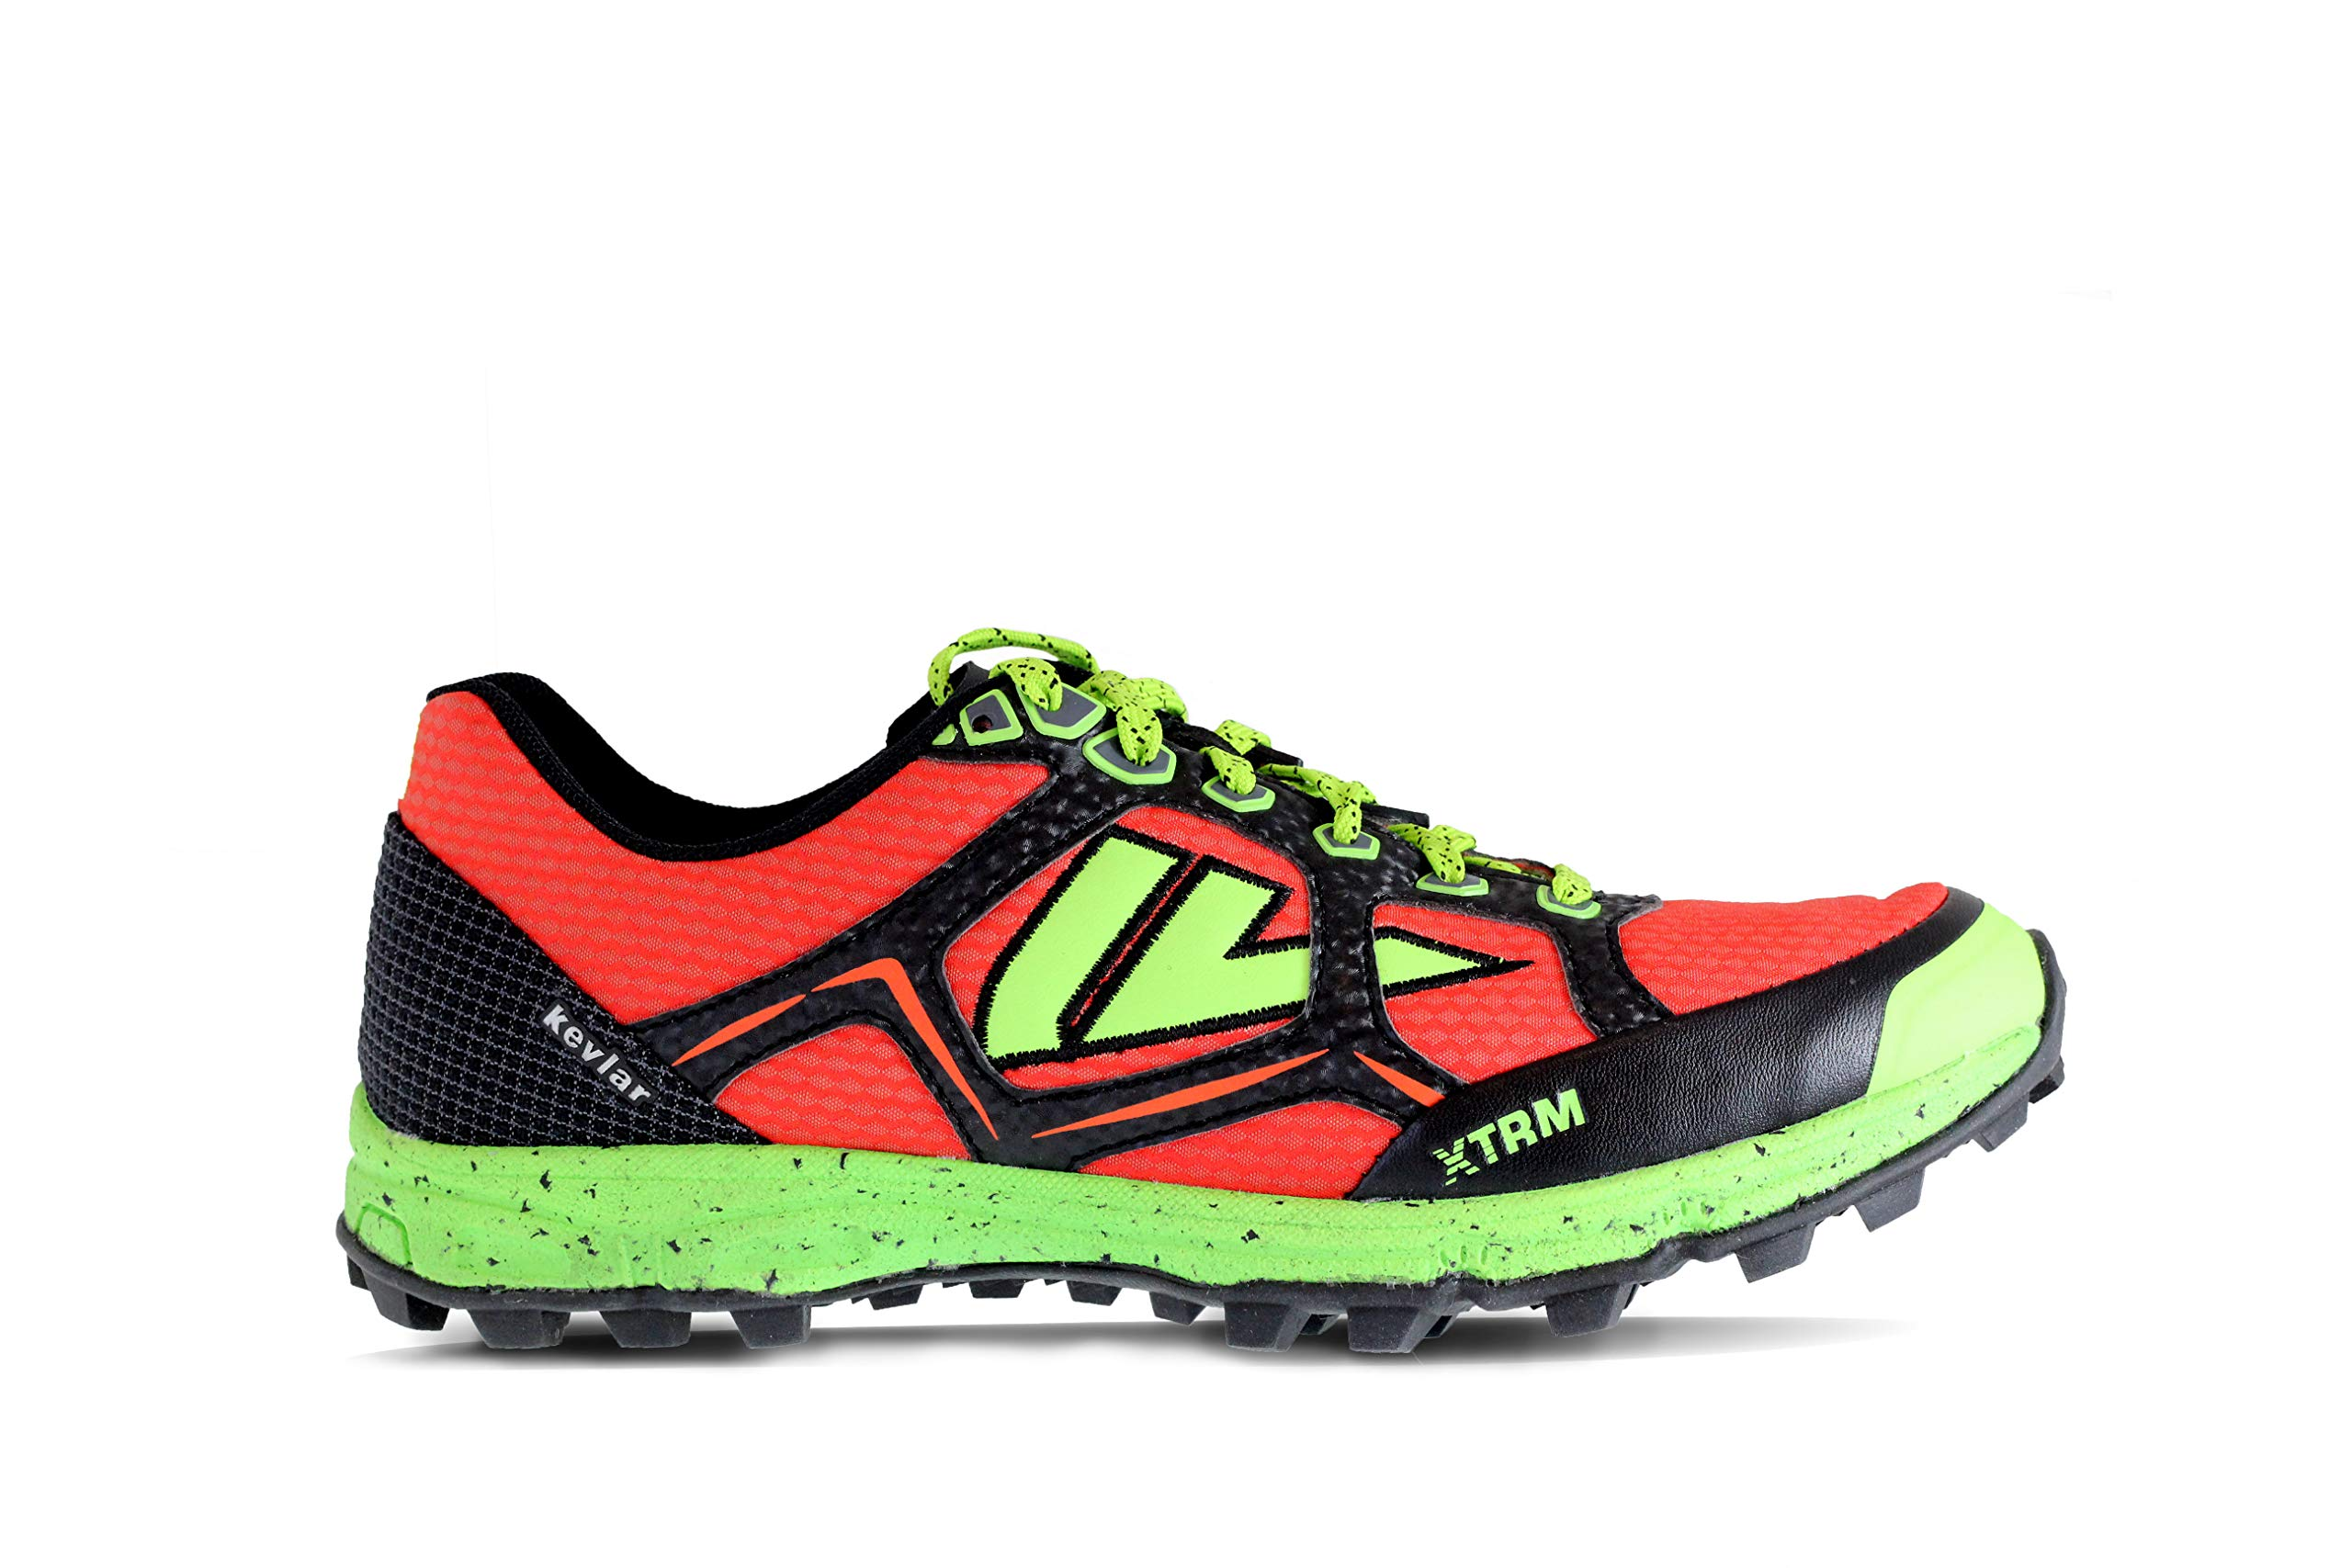 VJ XTRM OCR Shoes - Trail Running Shoes Women and Mens with a Full Length Rock Plate - Made for Rocky and Technical Mountain Trails and Obstacle Course Races